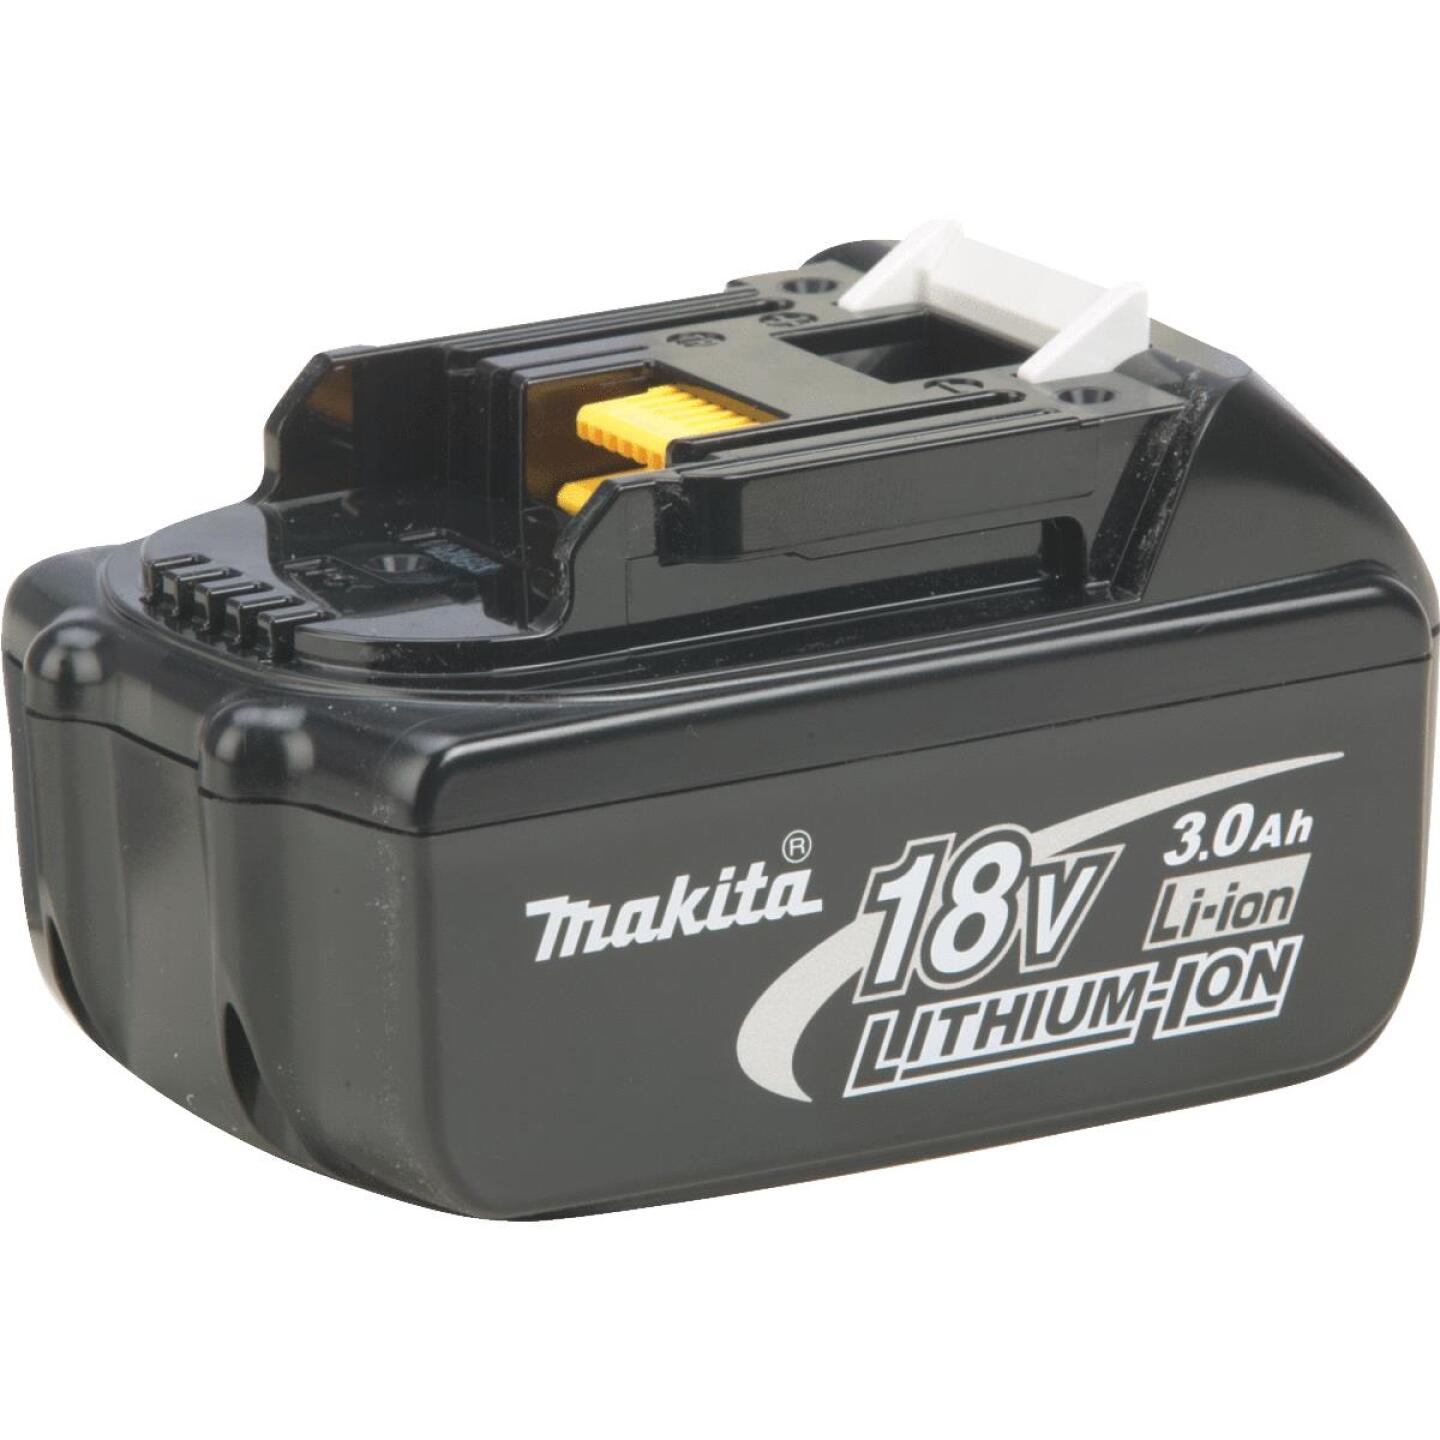 Makita 18 Volt LXT Lithium-Ion 3.0 Ah Tool Battery Image 1